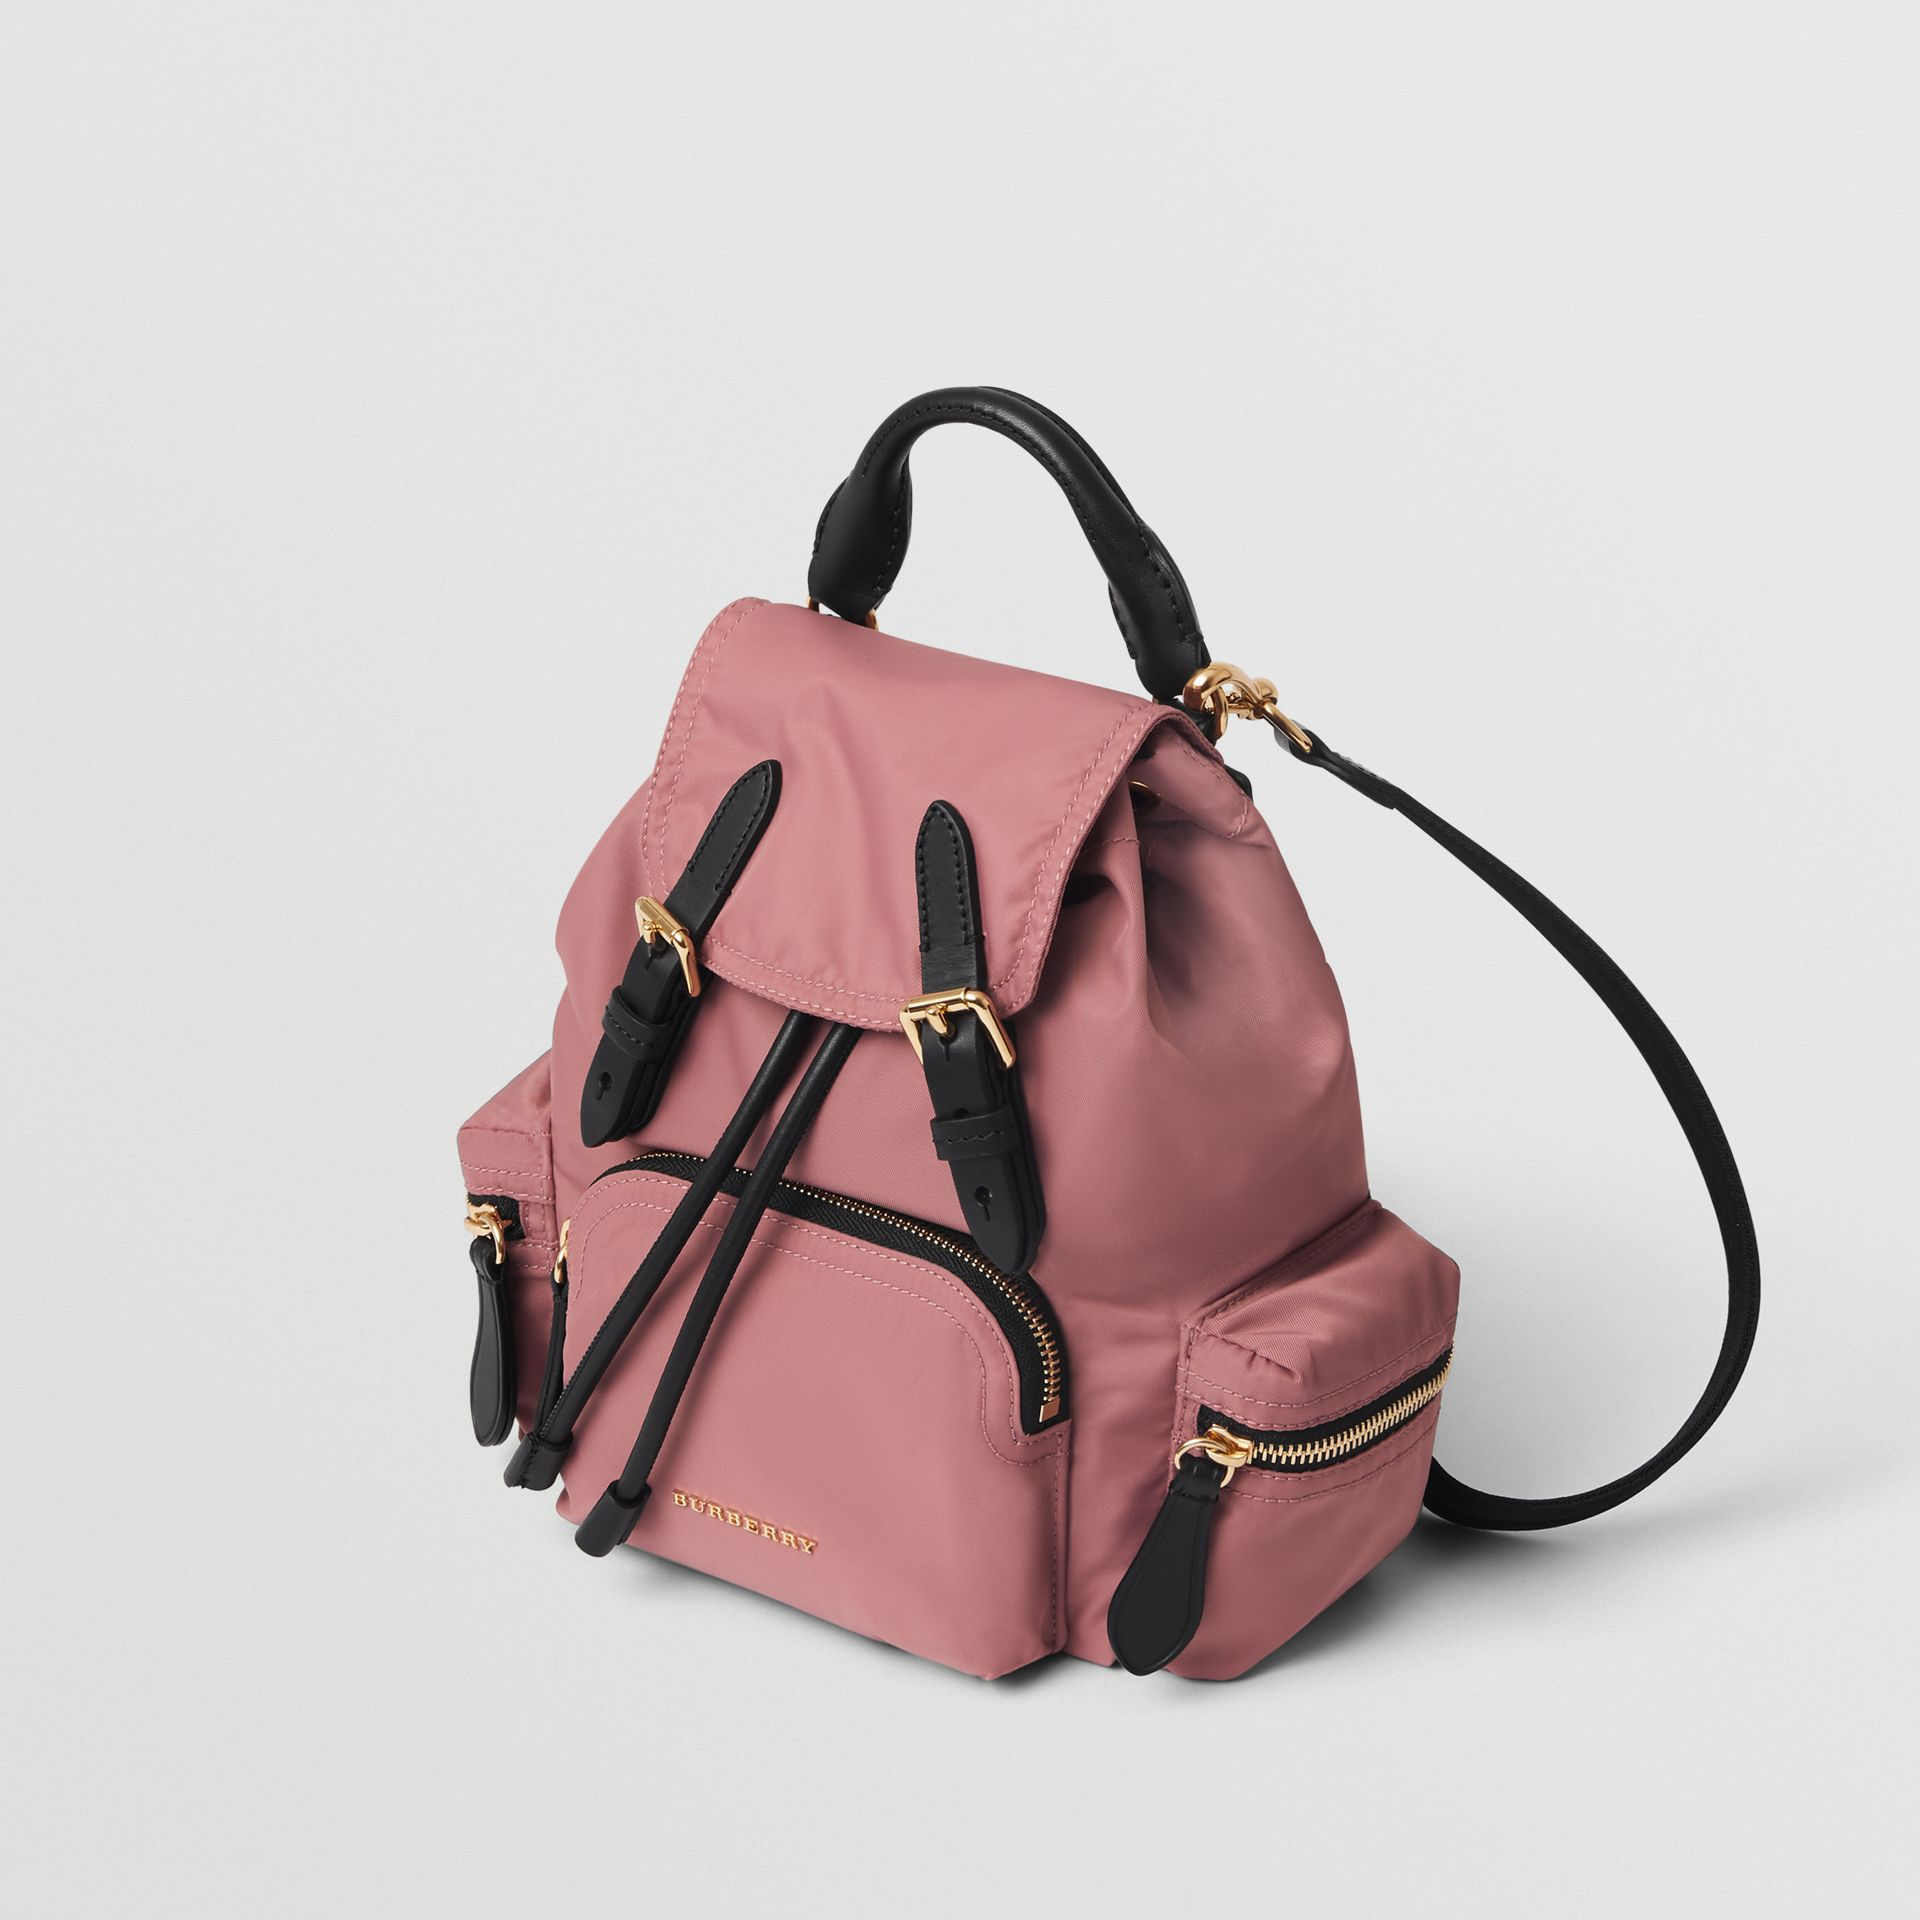 The Small Crossbody Rucksack in Nylon in Mauve Pink - Women | Burberry Canada - gallery image 4